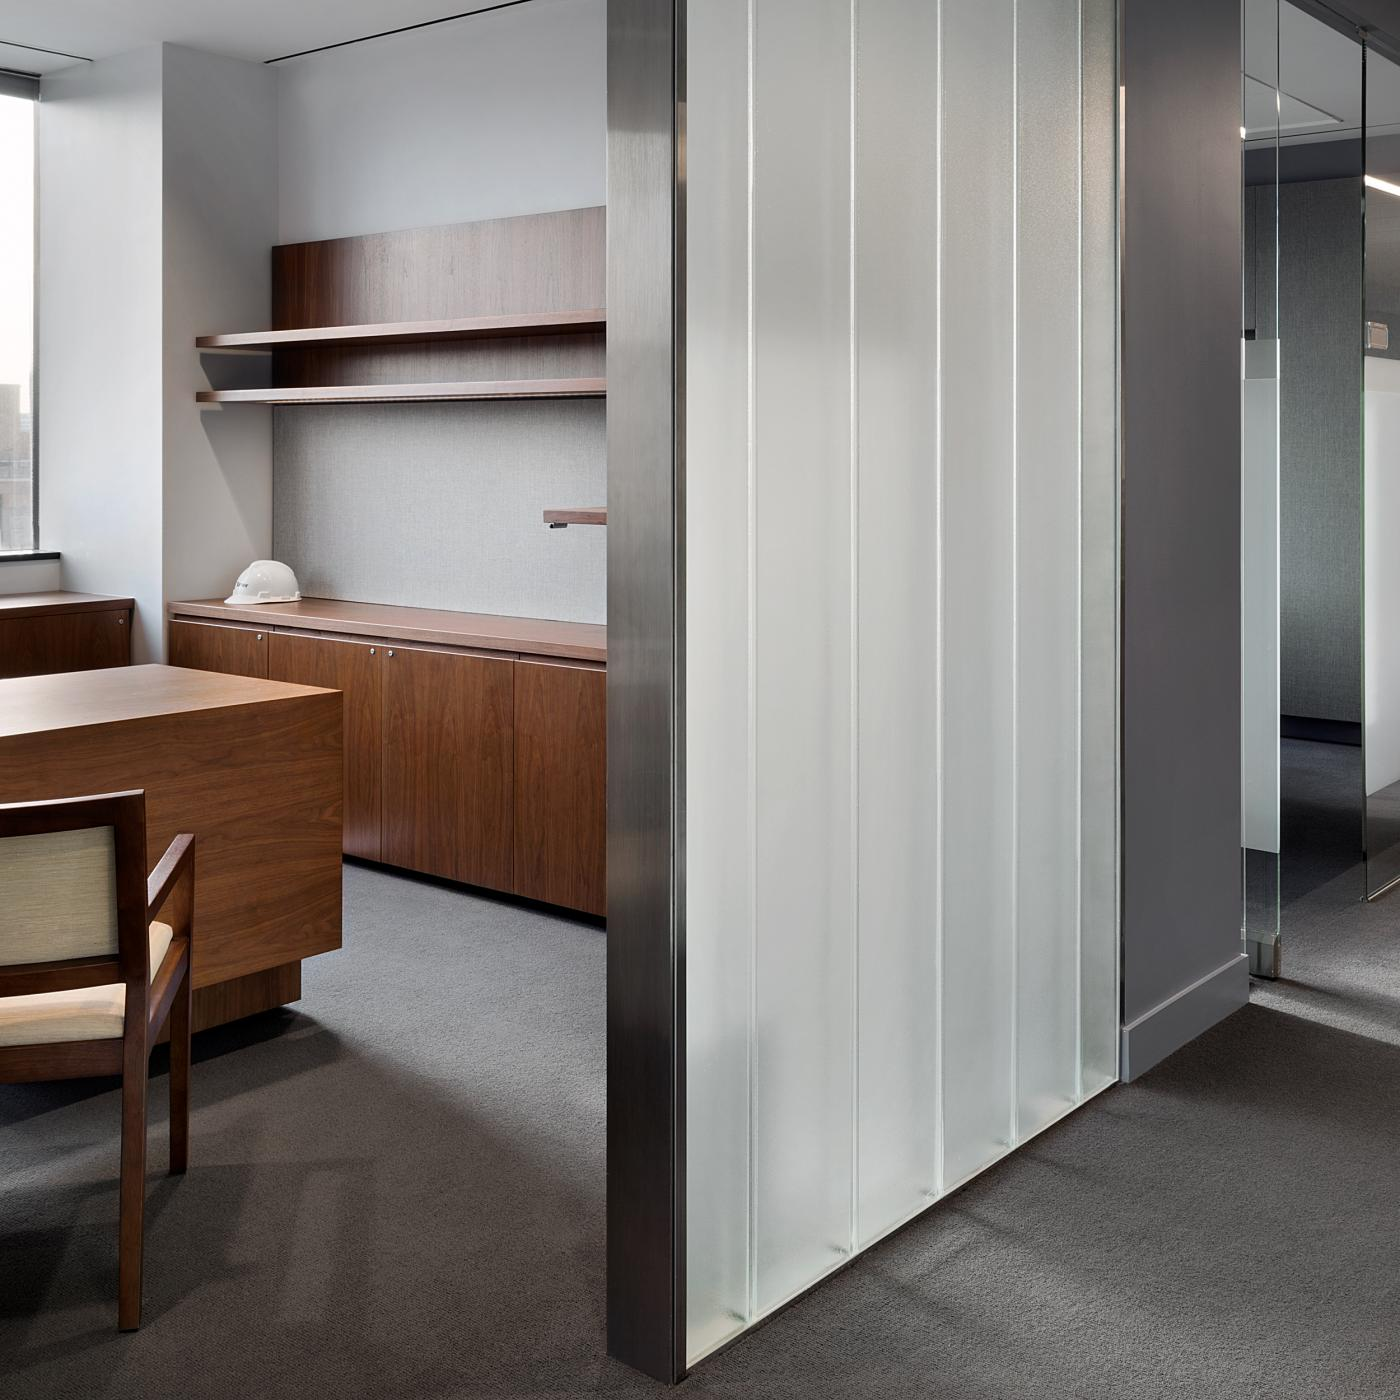 New Millennia private offices include adjustable-height desking and continuous floating shelves.